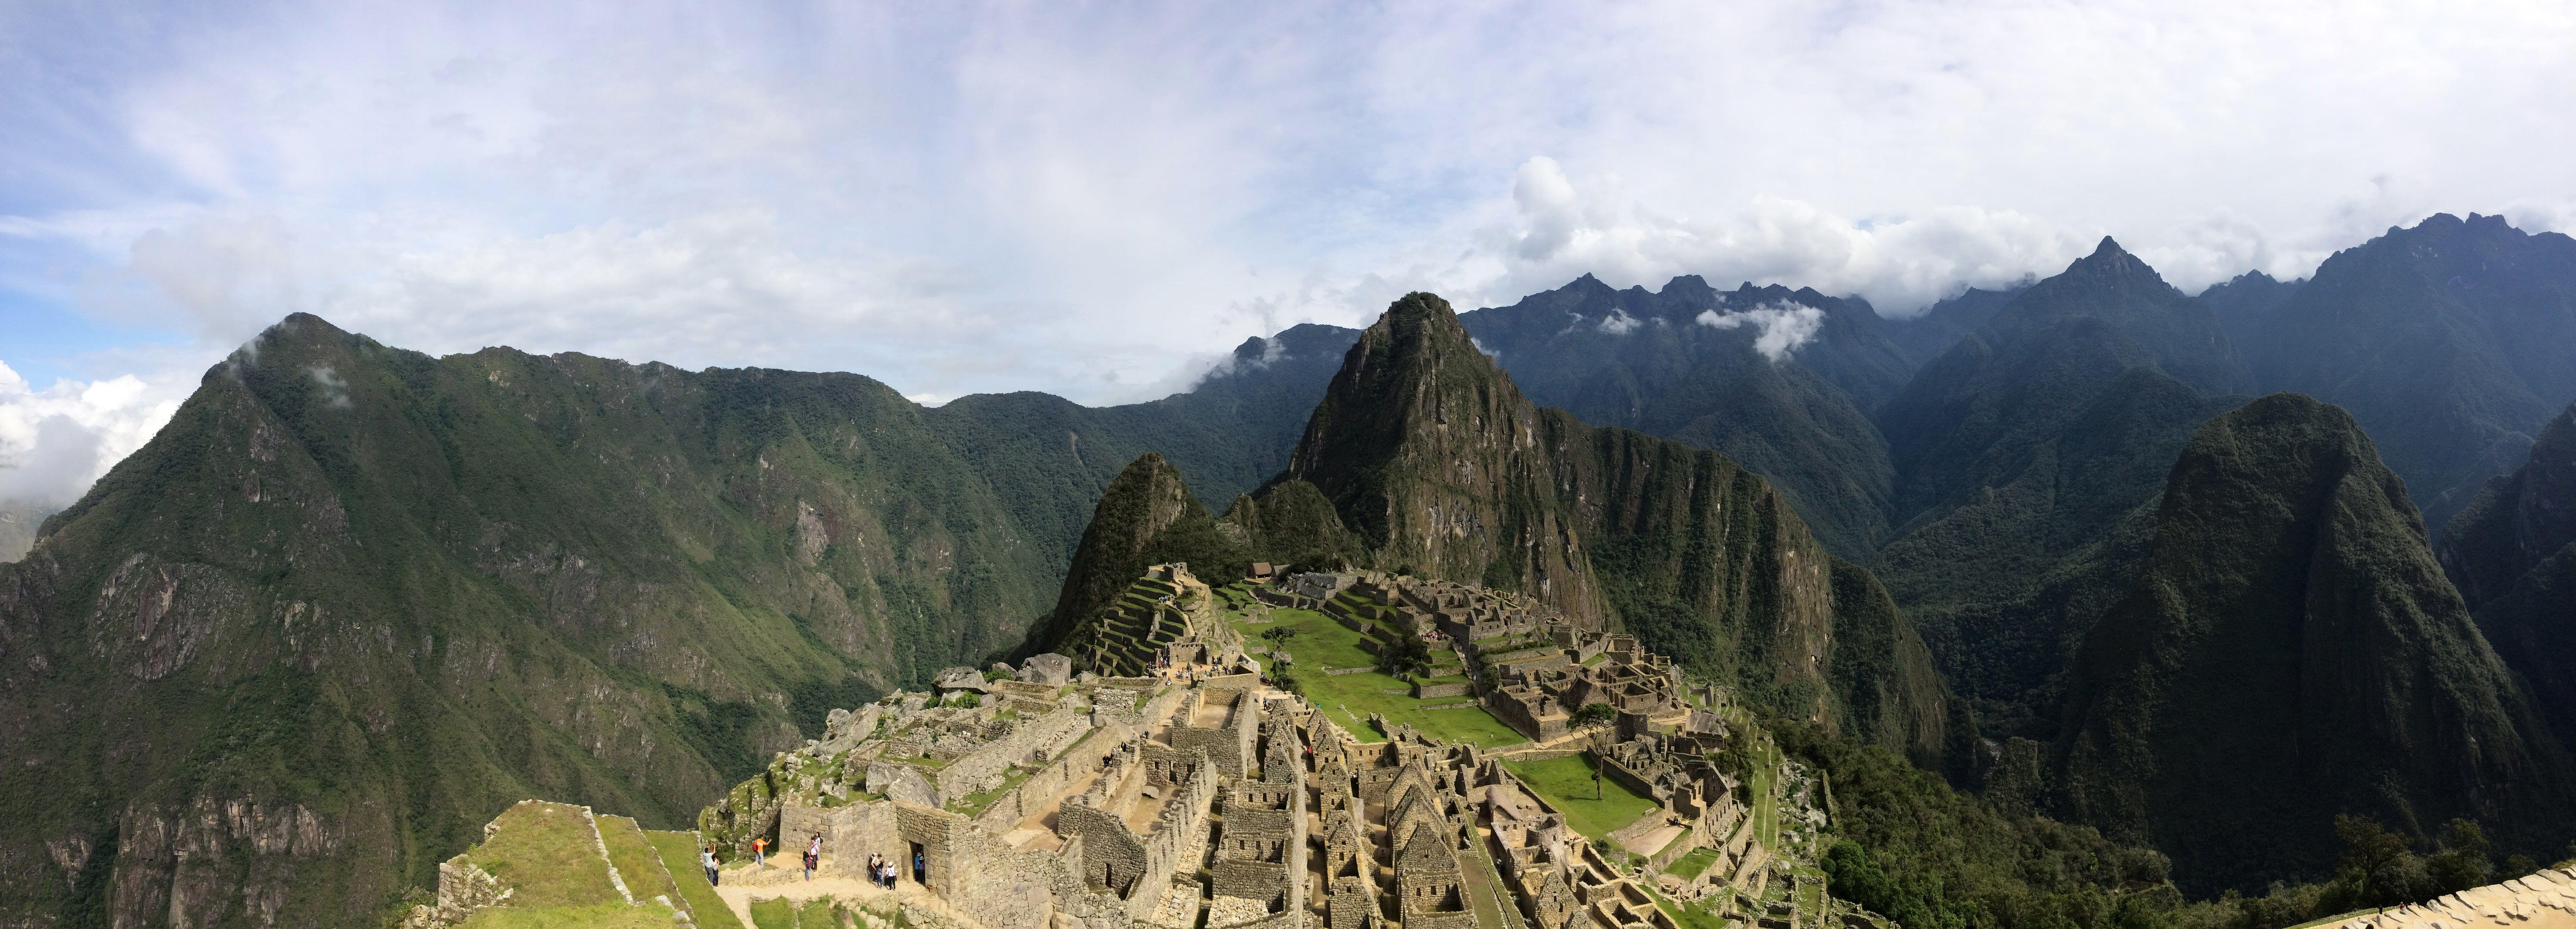 Machu Picchu | Photo by Wilson Carletti (All Rights Reserved)